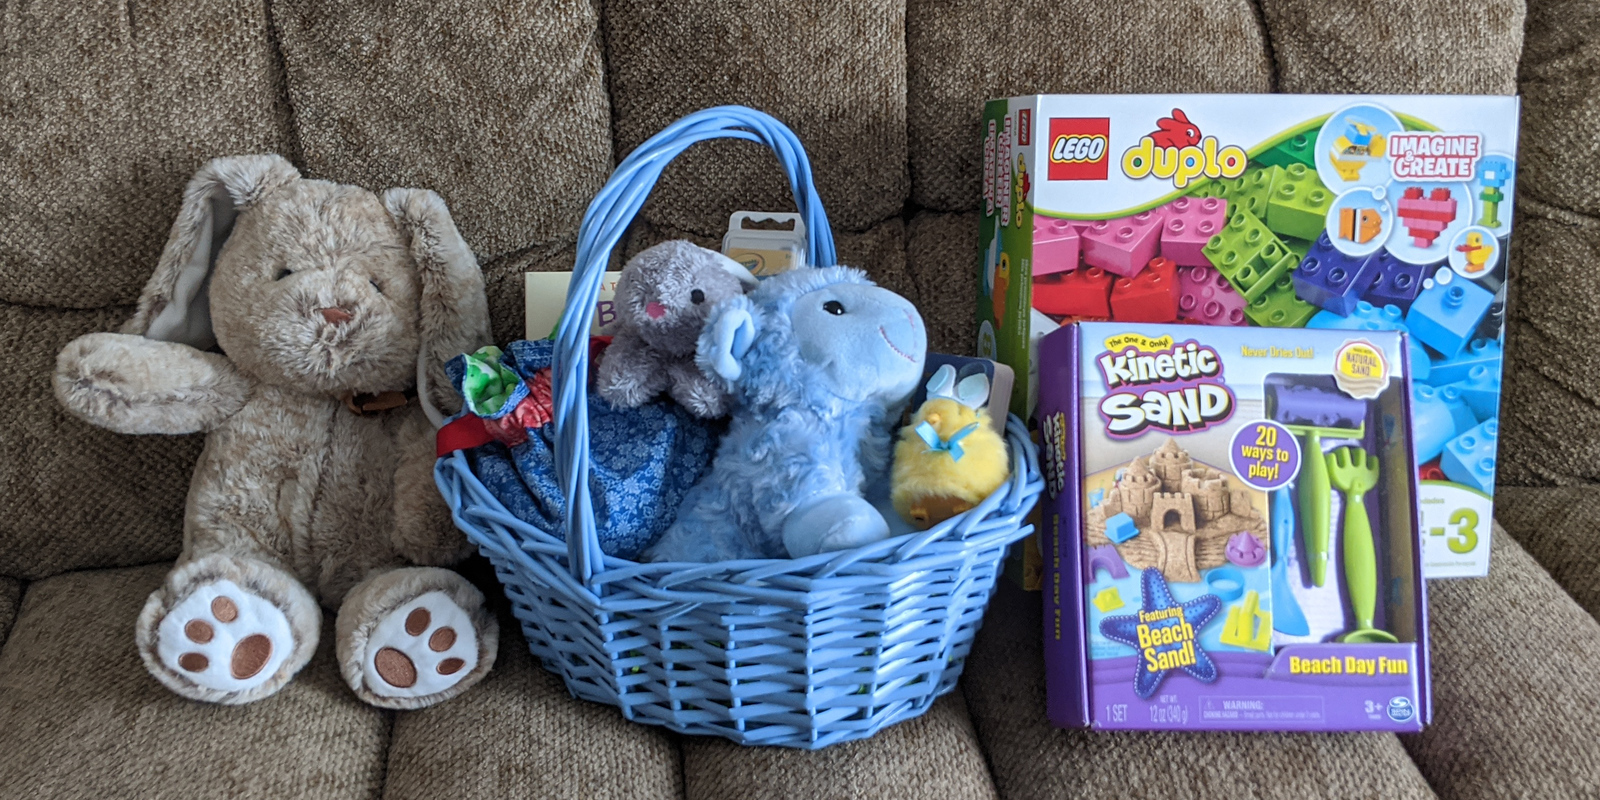 Easter Basket, April 12, 2020